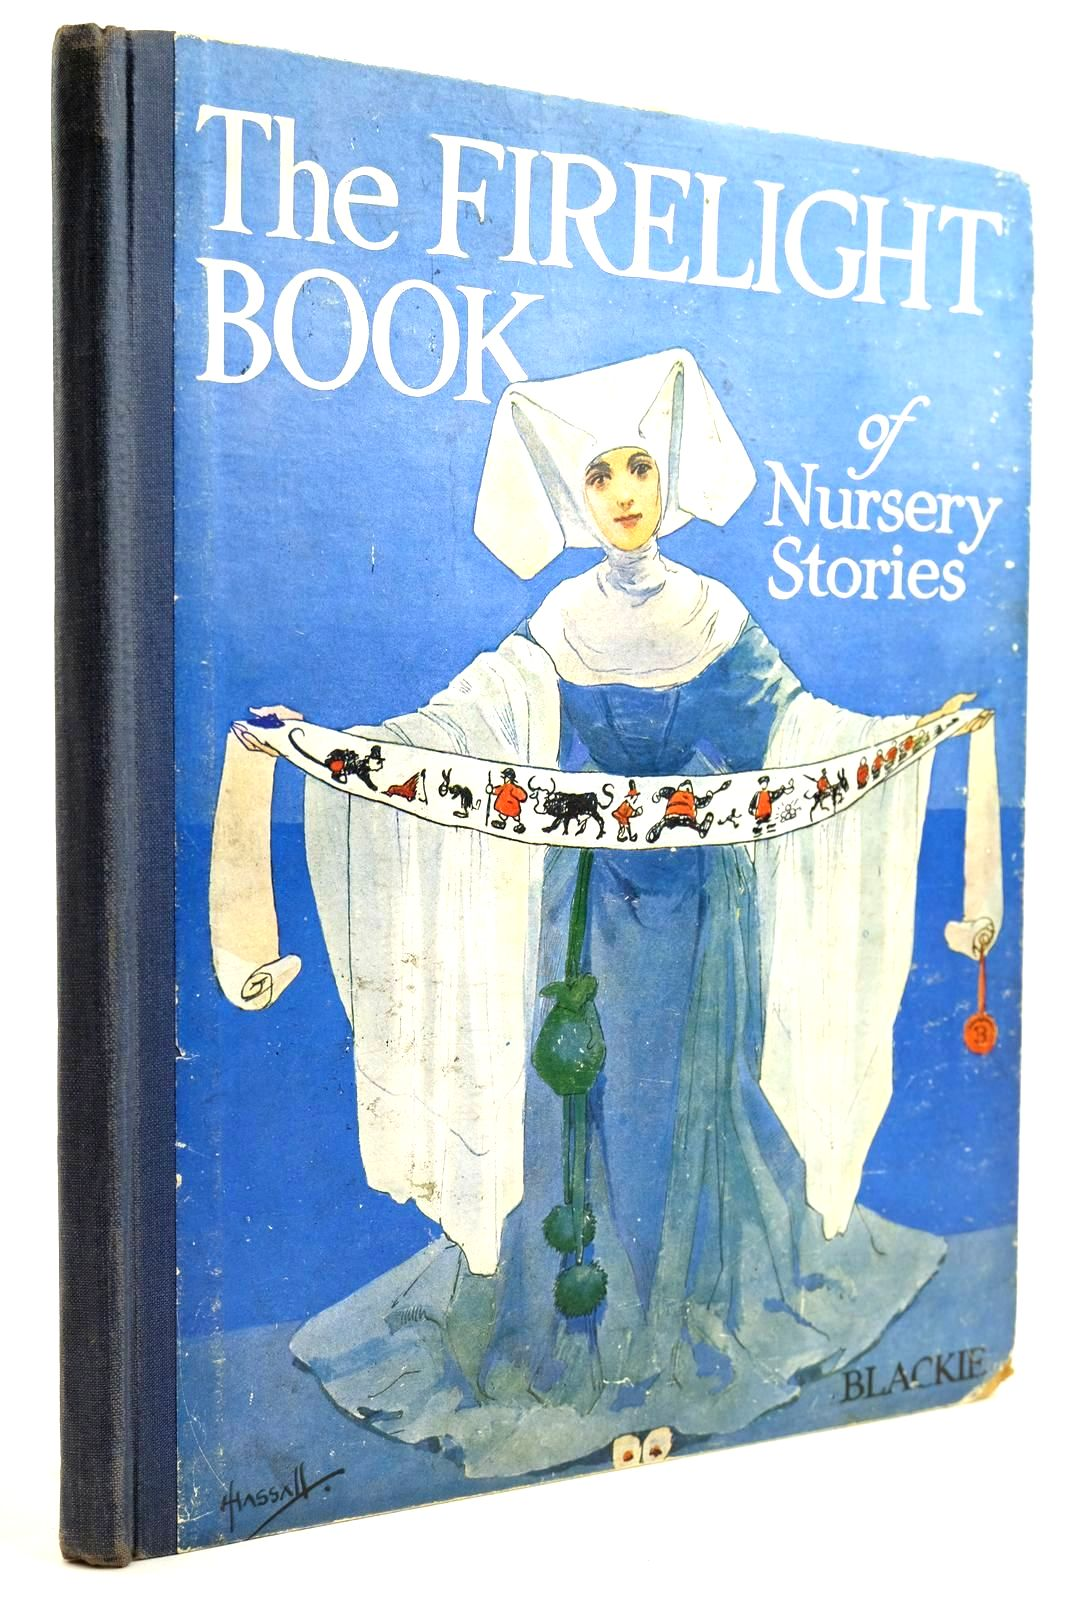 Photo of THE FIRELIGHT BOOK OF NURSERY STORIES illustrated by Hassall, John published by Blackie & Son Ltd. (STOCK CODE: 2132133)  for sale by Stella & Rose's Books